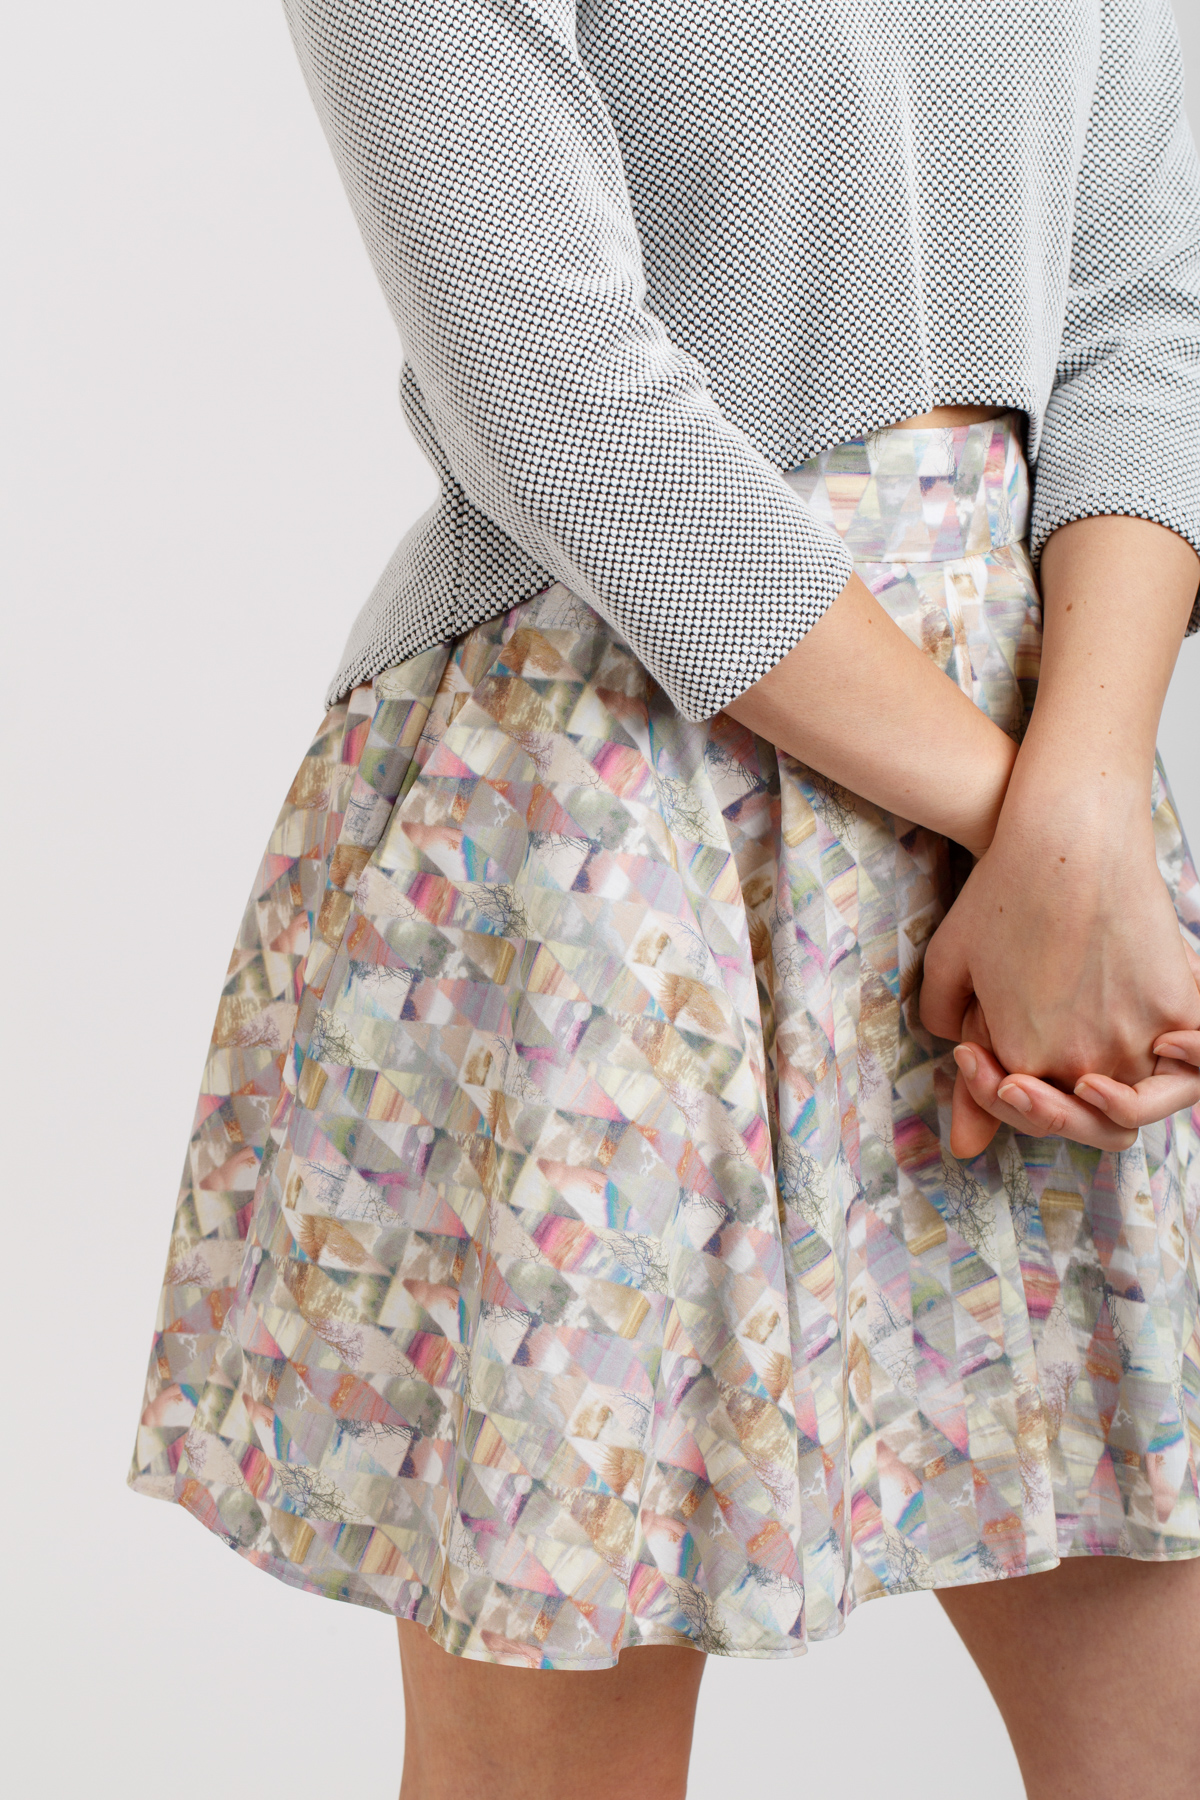 Introducing Tania Culottes with Pockets!